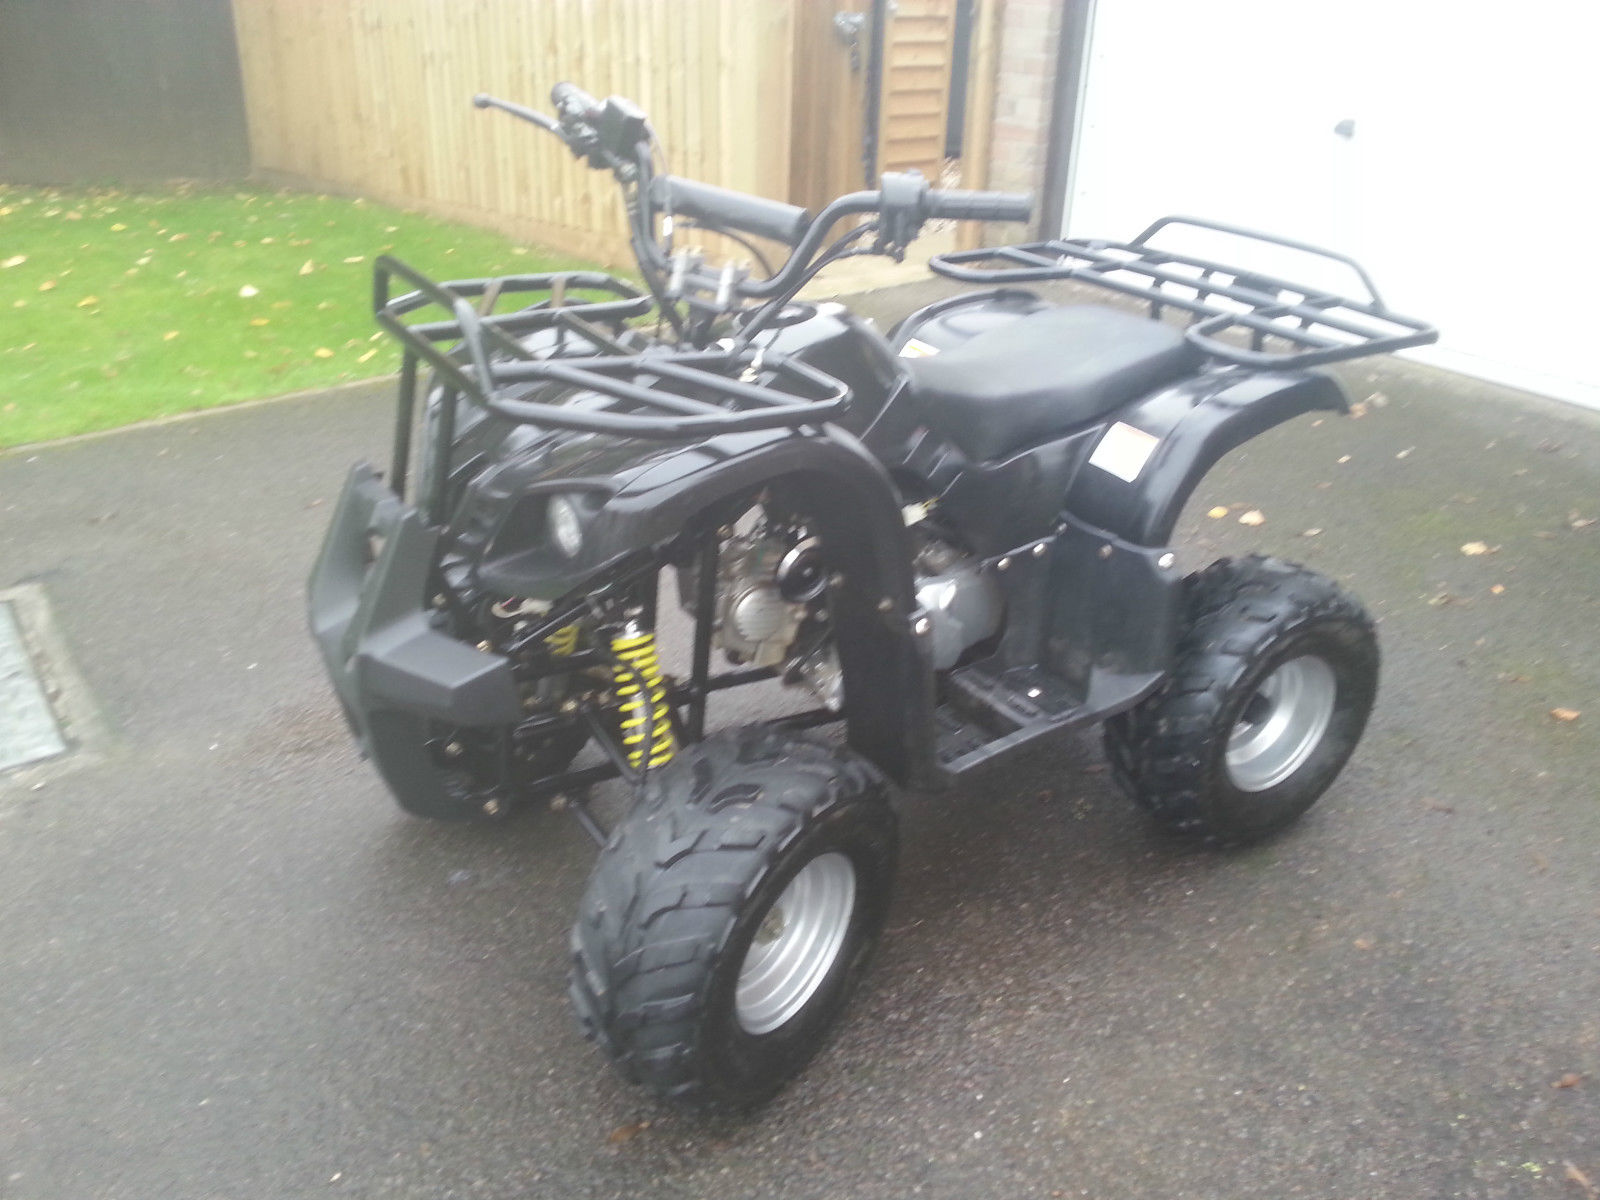 110cc quad mint condition from superbyke bristol fully auto alarm remote  kill